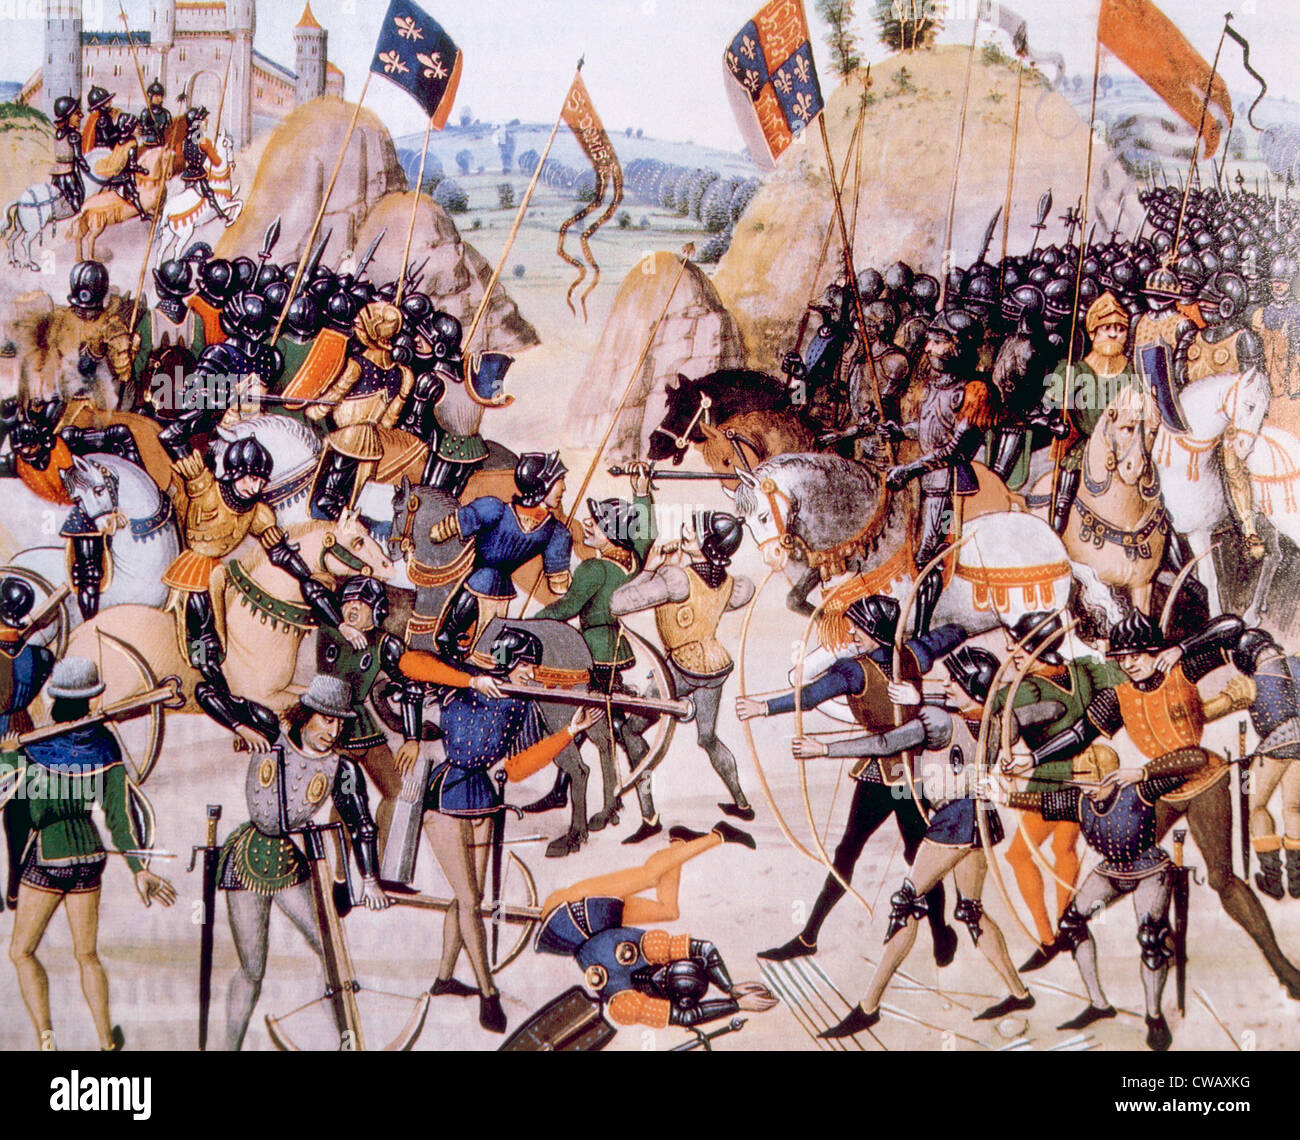 The Battle of Crecy, Edward III of England defeats Philip VI of France, August 26, 1346 - Stock Image